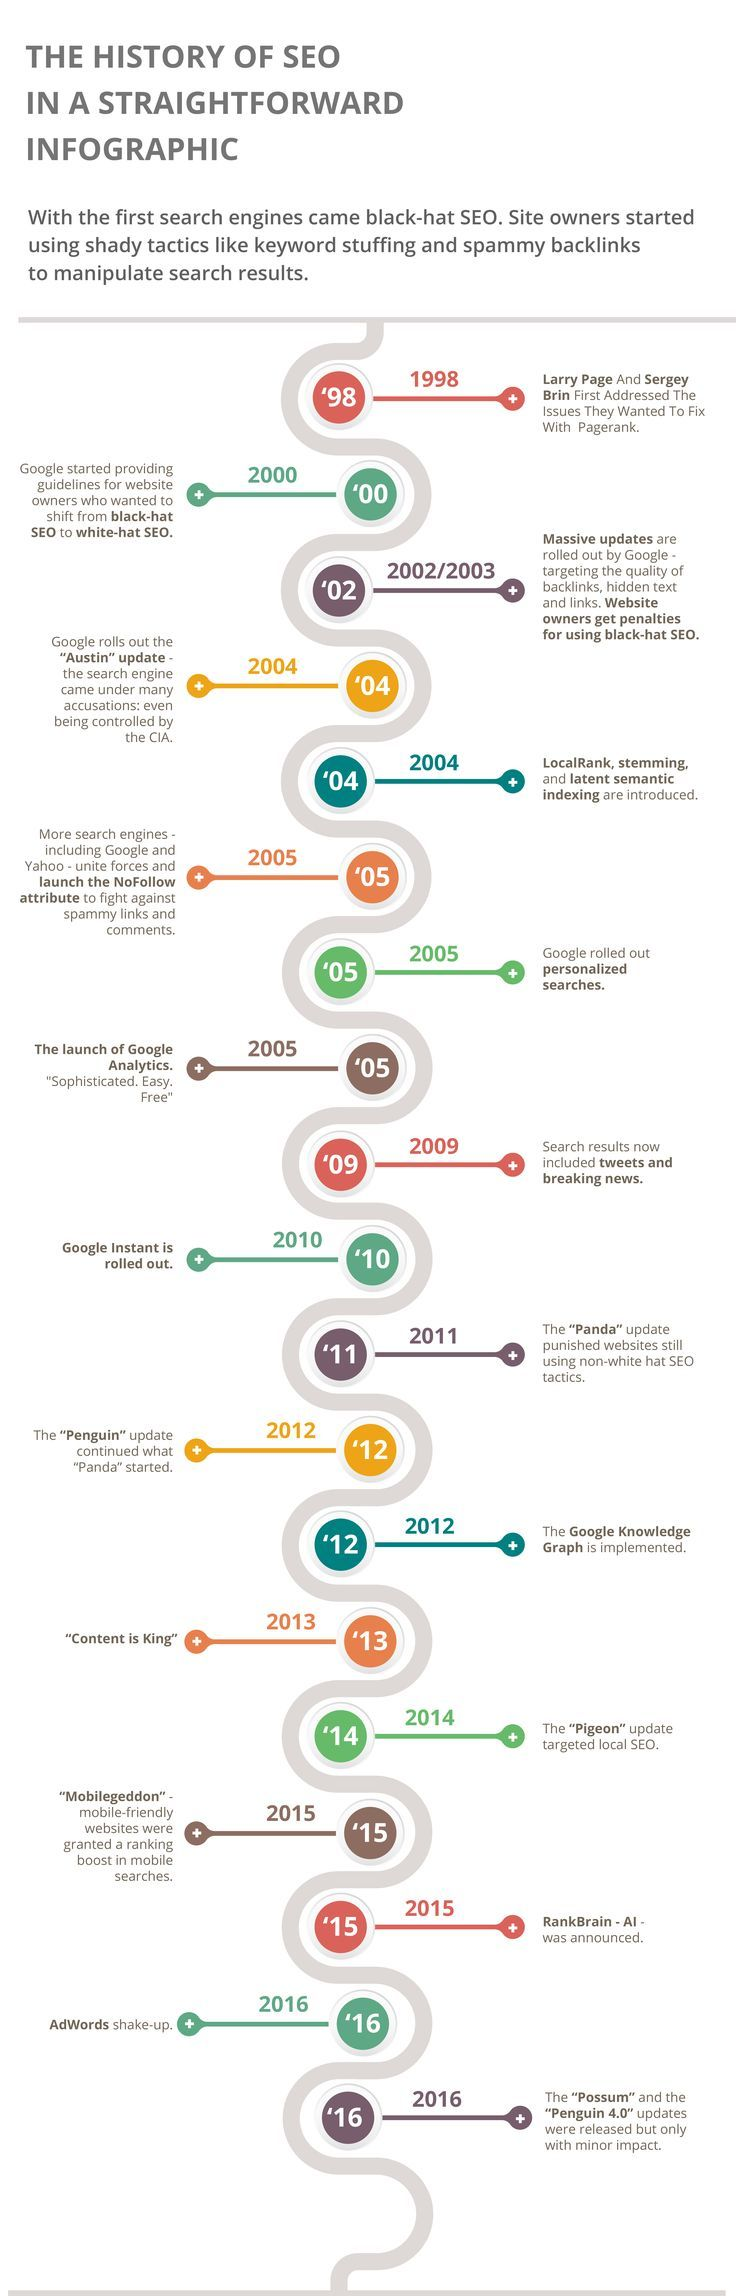 Before we actually get started on the history of SEO, let's have a look at some chronological milestones. Just to put things into perspective.